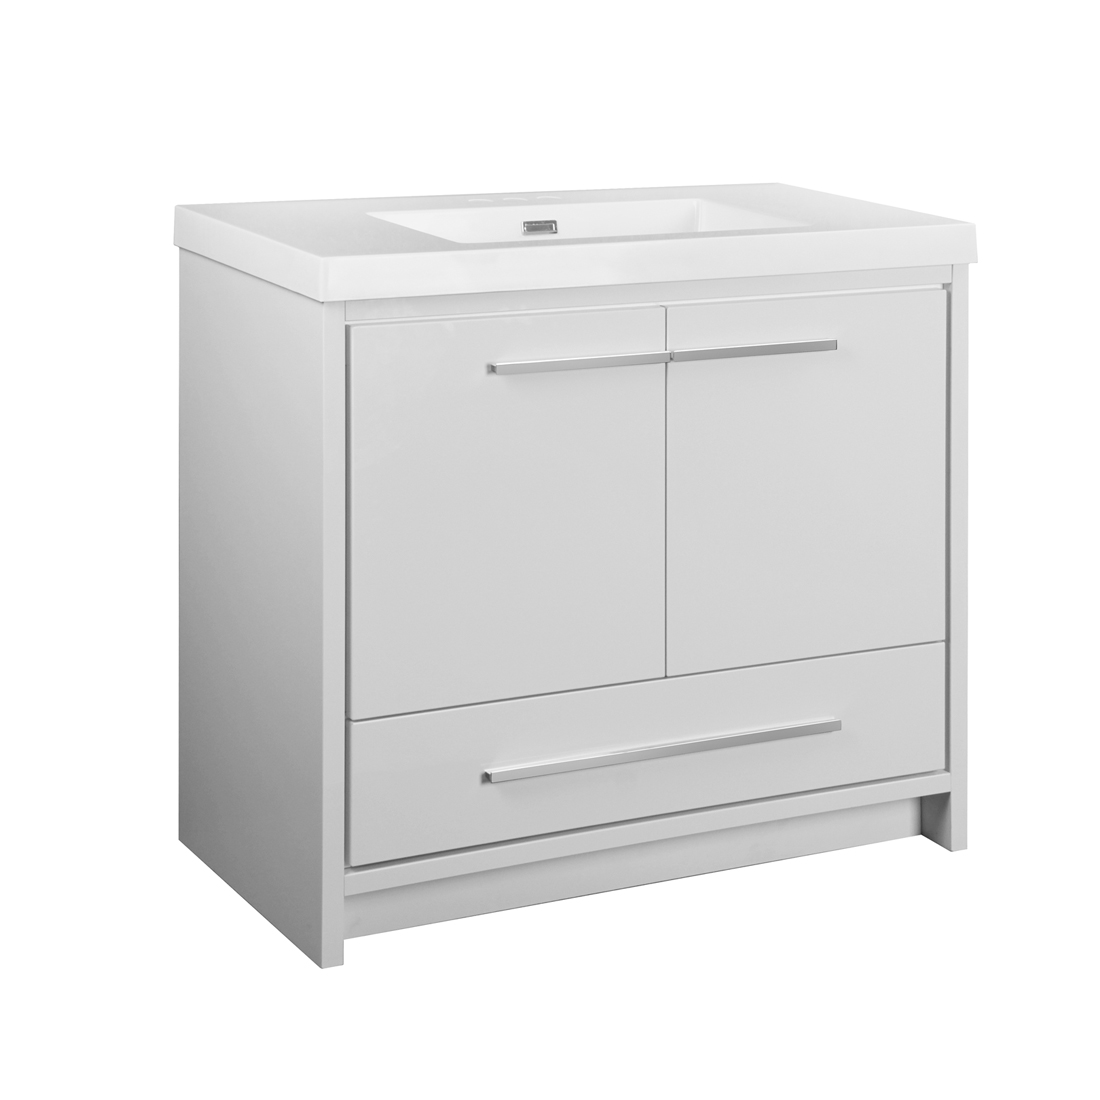 Romali 2.0 36inch-White Vanity front view